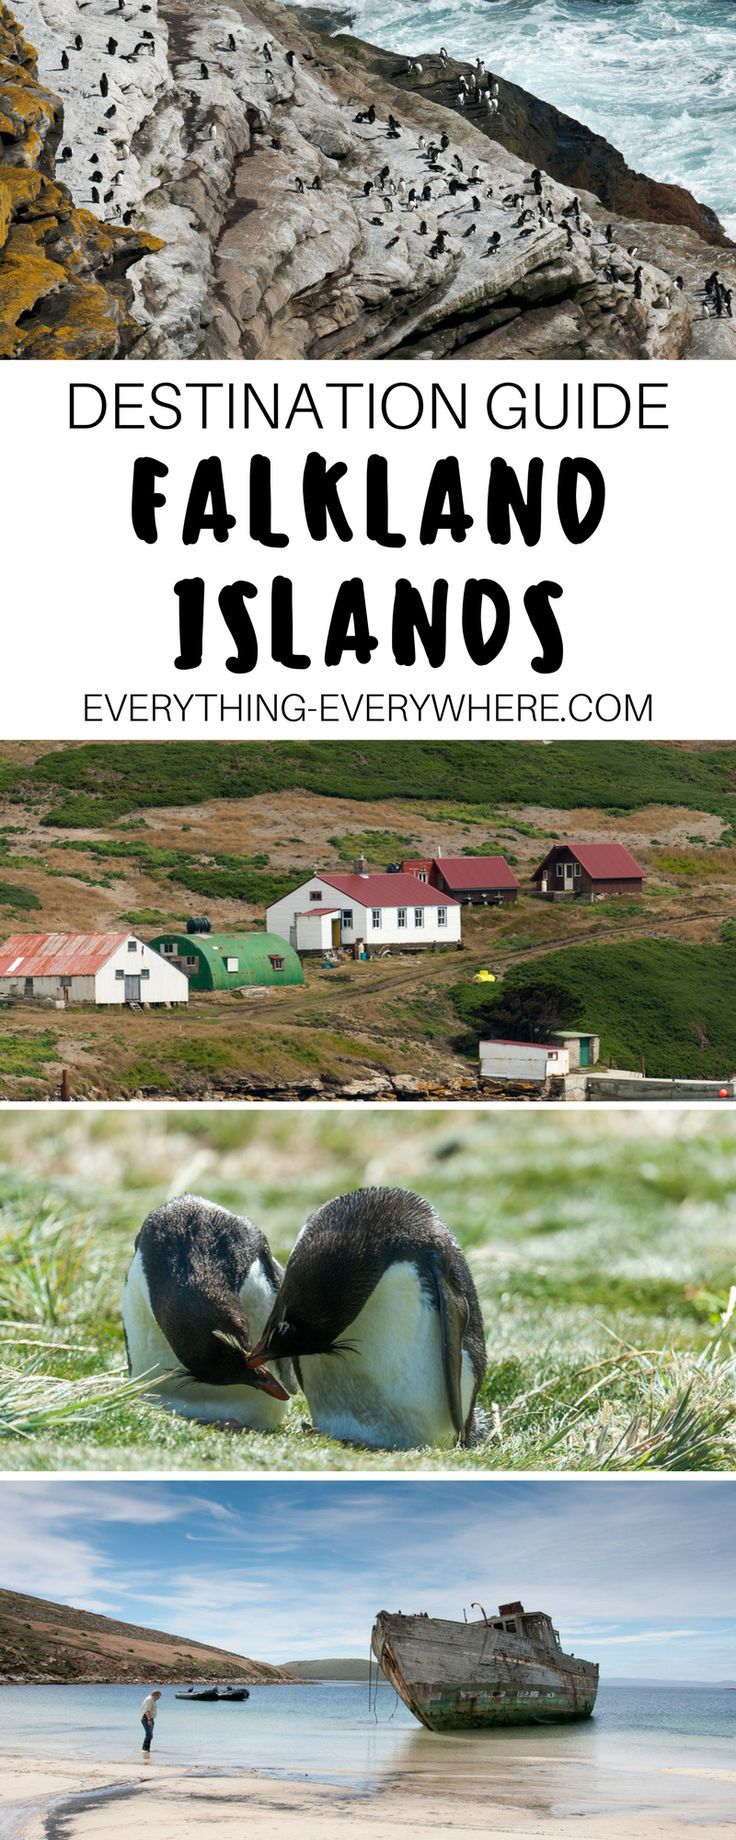 Practical travel tips for anyone planning a trip to the Falkland Islands including best islands and places to visit + information on people / culture, cuisine, airports, visa, and currency. Travel in South America | Everything Everywhere Destination Guide